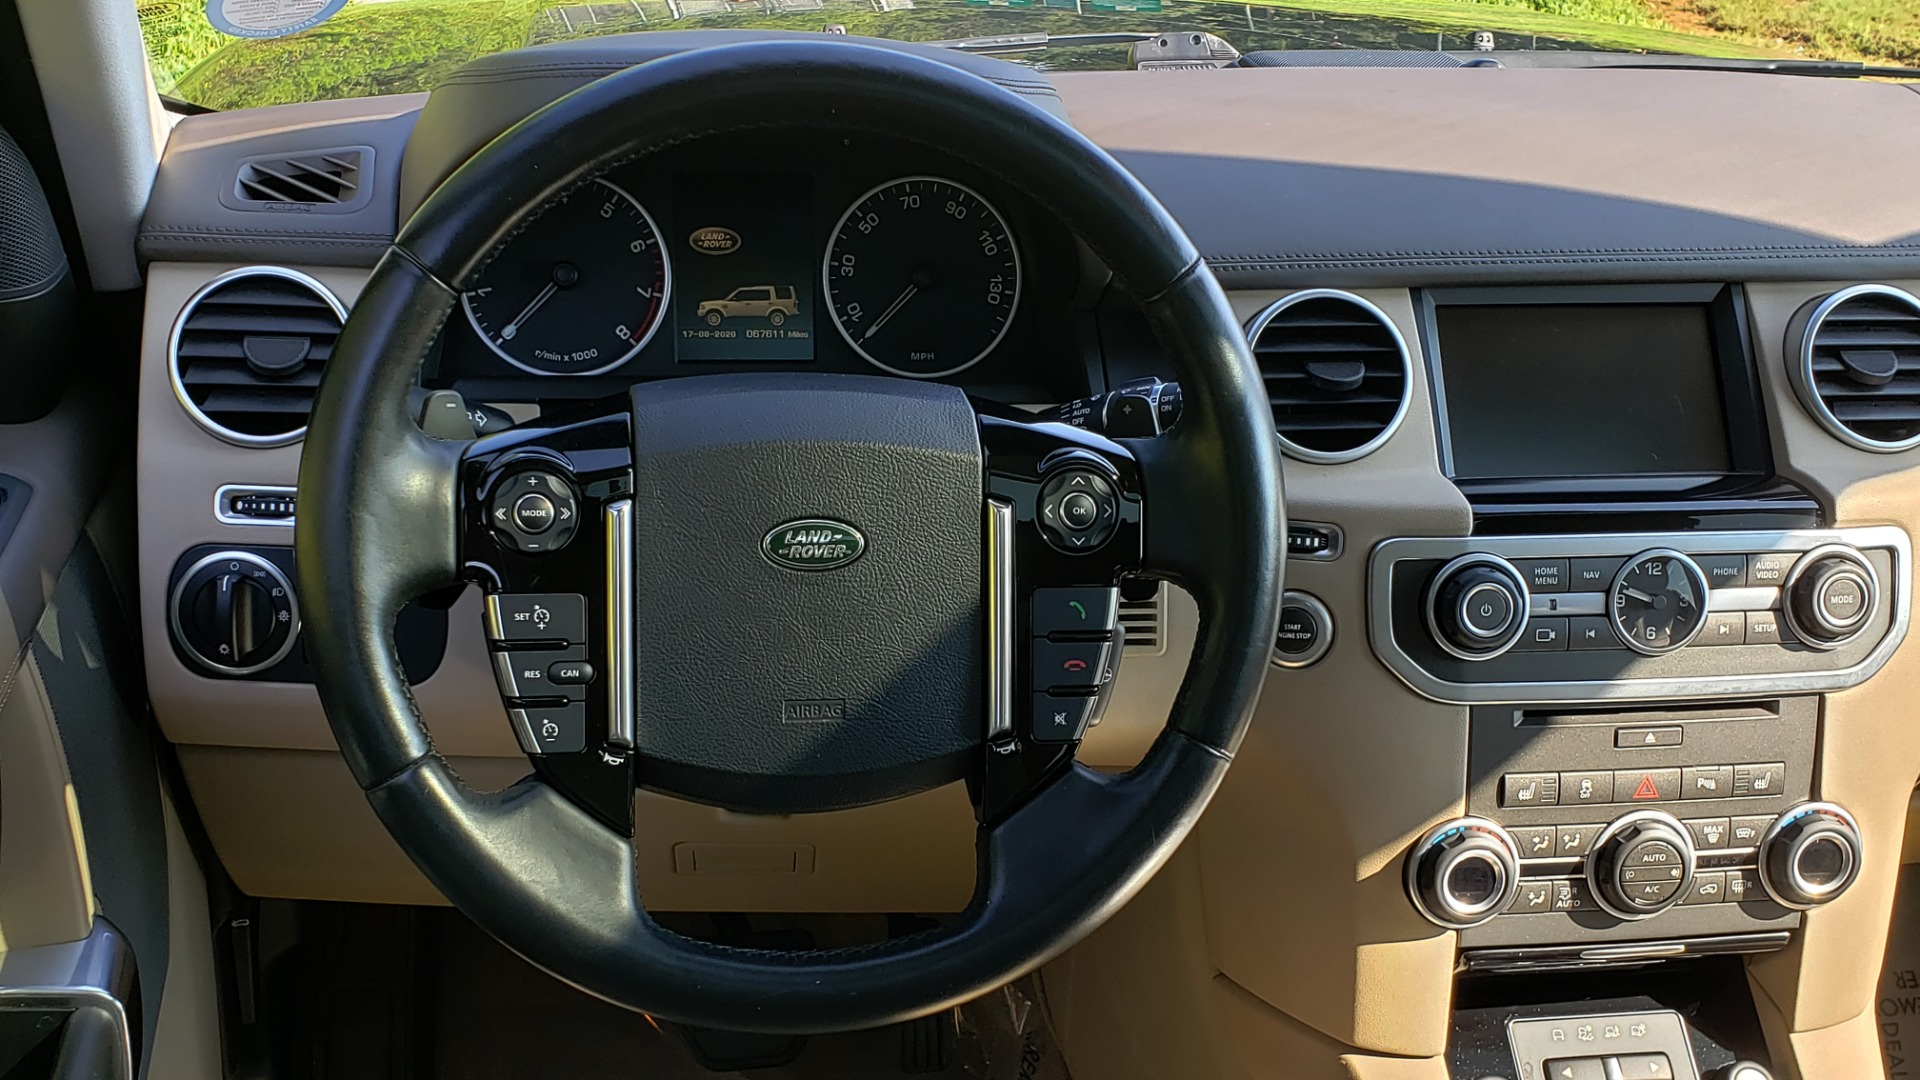 Used 2016 Land Rover LR4 HSE LUX LANDMARK EDITION / NAV / HTD STS / SUNROOF / REARVIEW for sale Sold at Formula Imports in Charlotte NC 28227 42